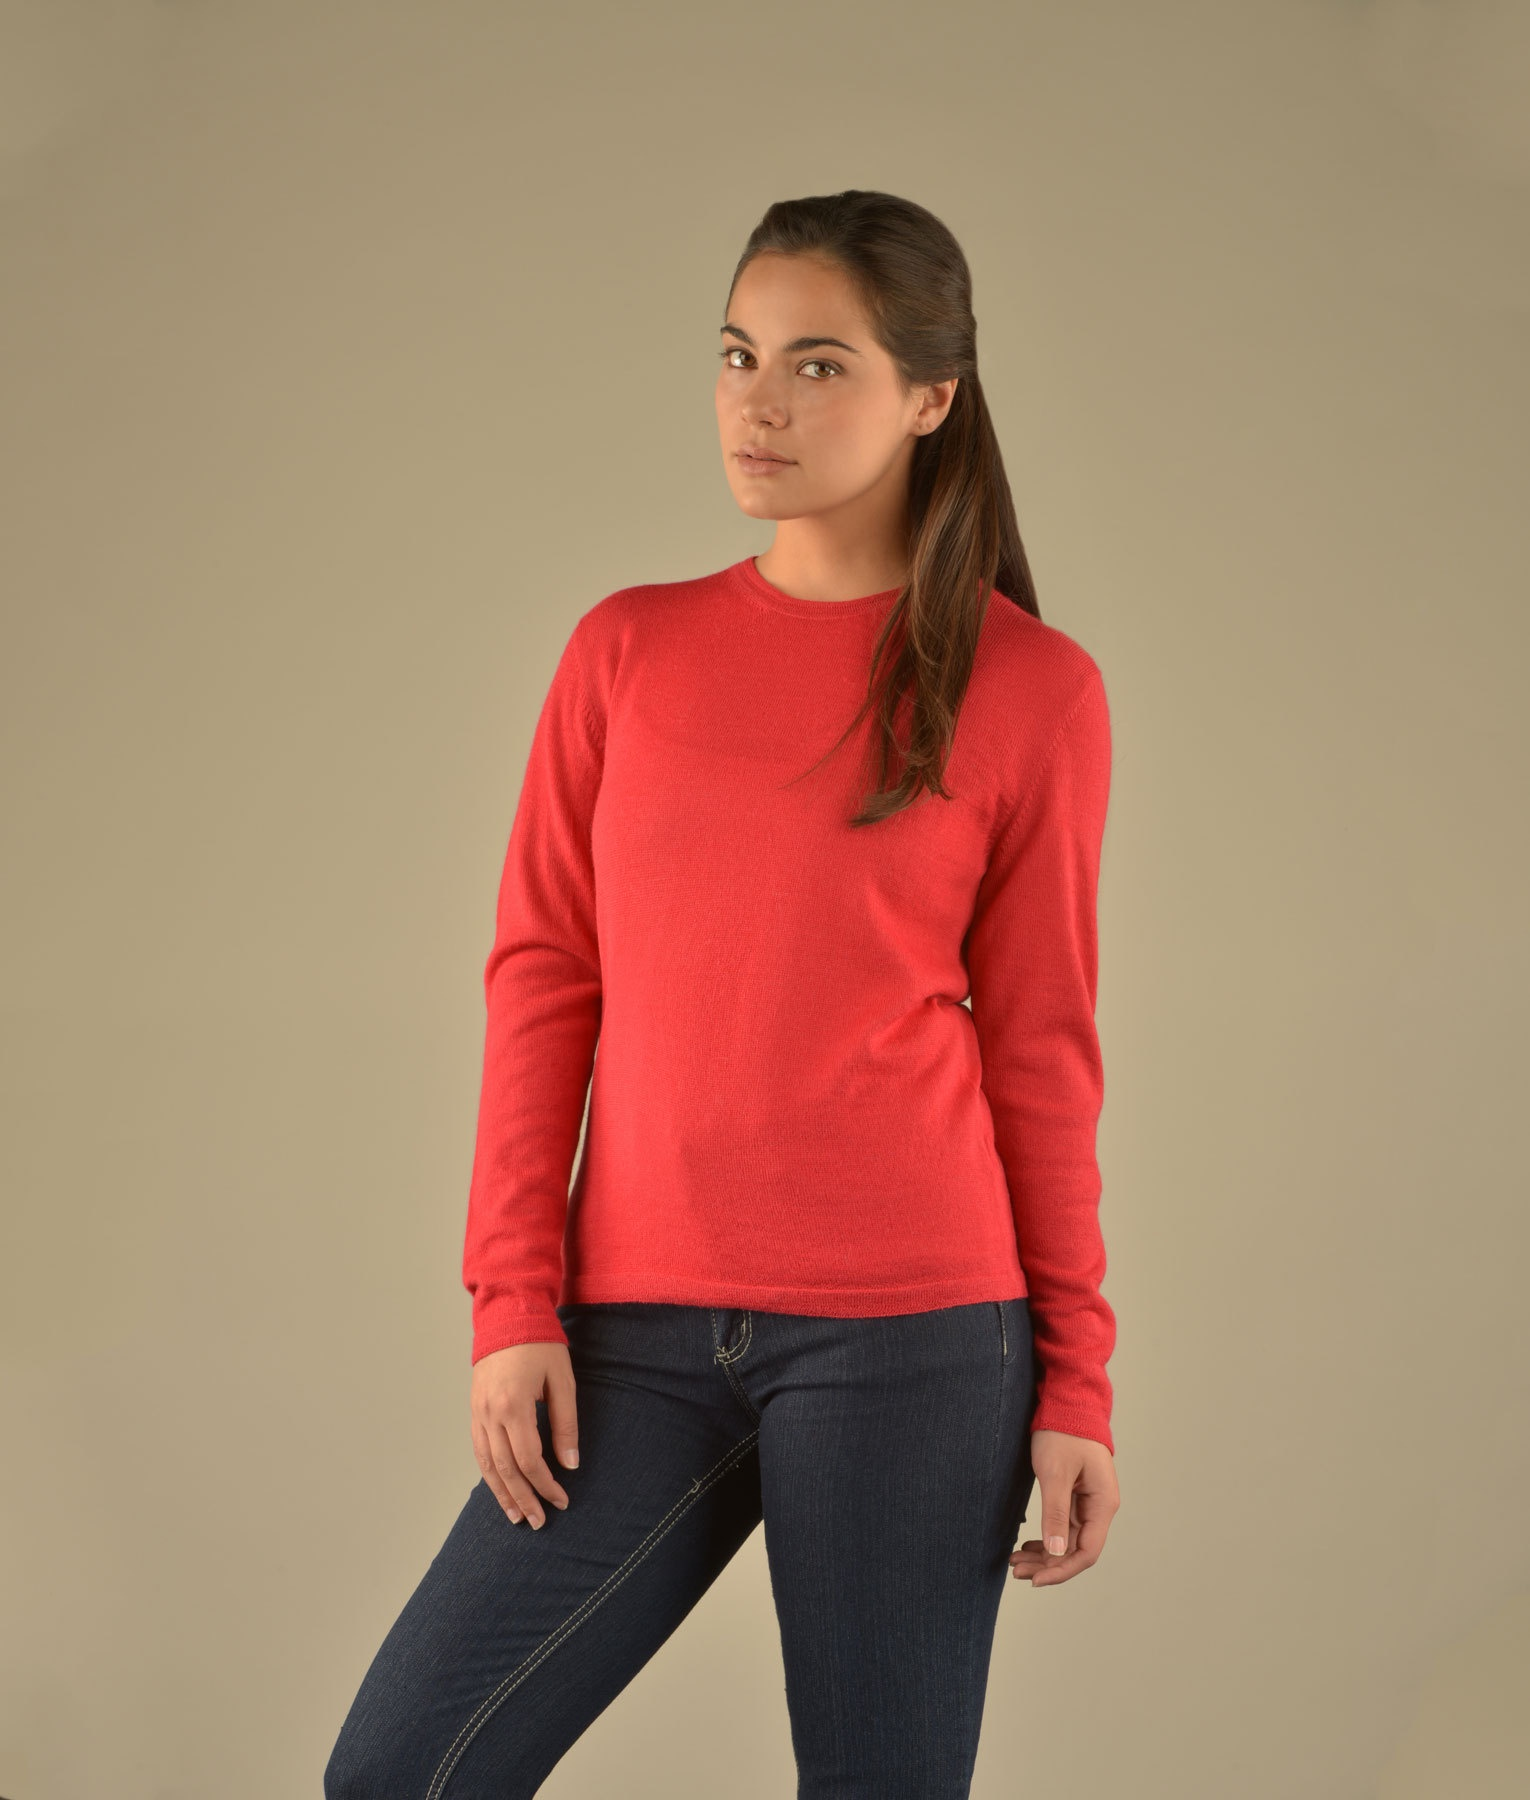 JERSEY FULLY FASHION PULLOVER RJ12953